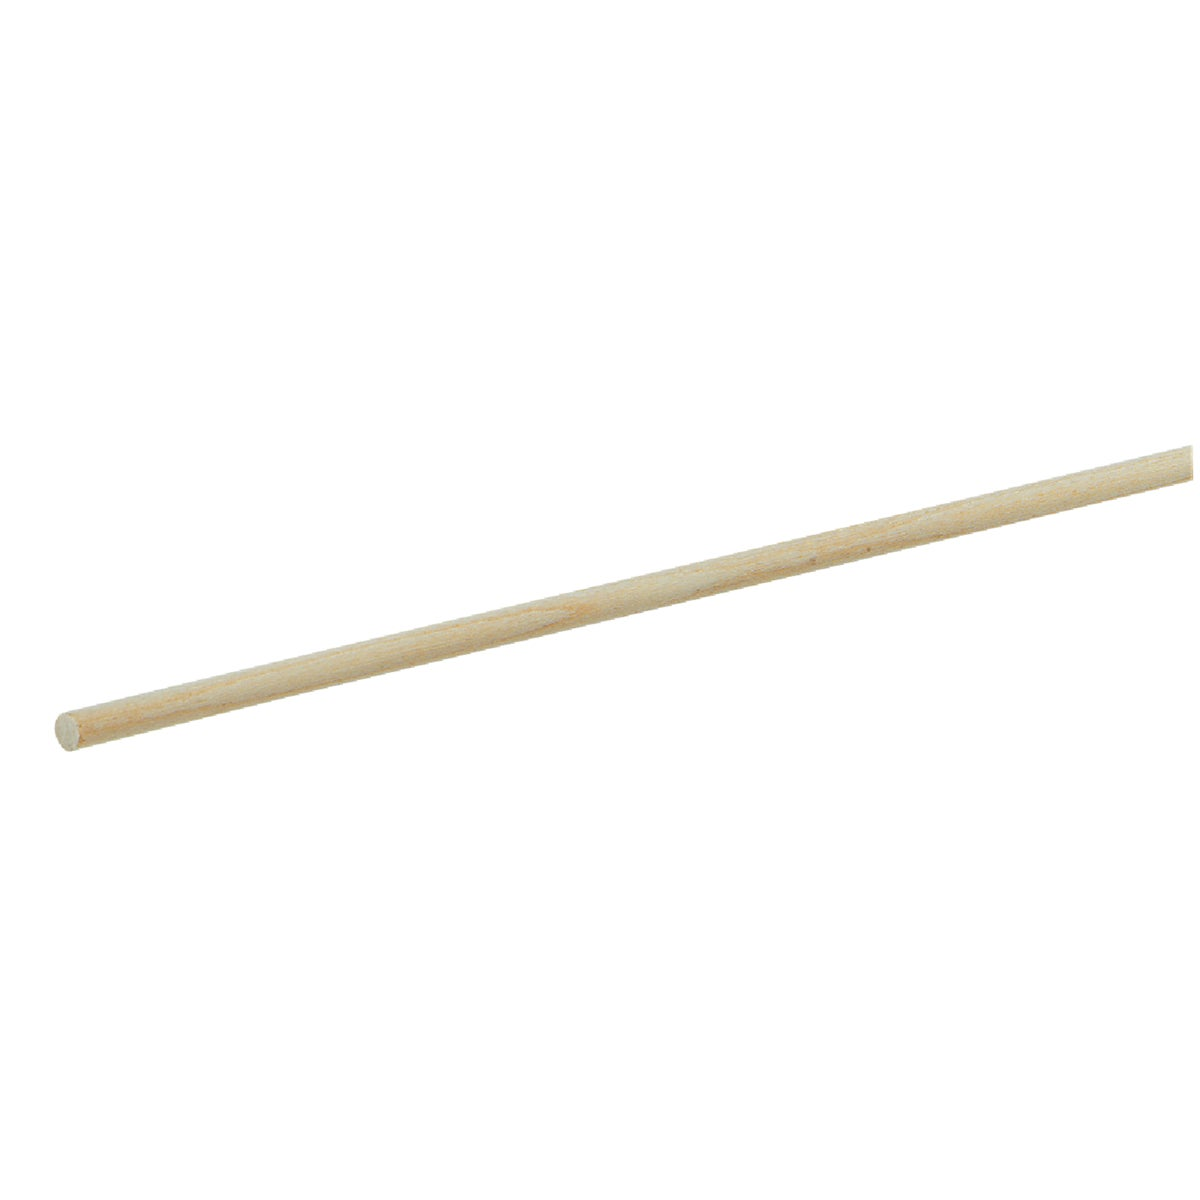 Waddell Mfg Co 1/8X48 HARDWOOD DOWEL 6402UB-100